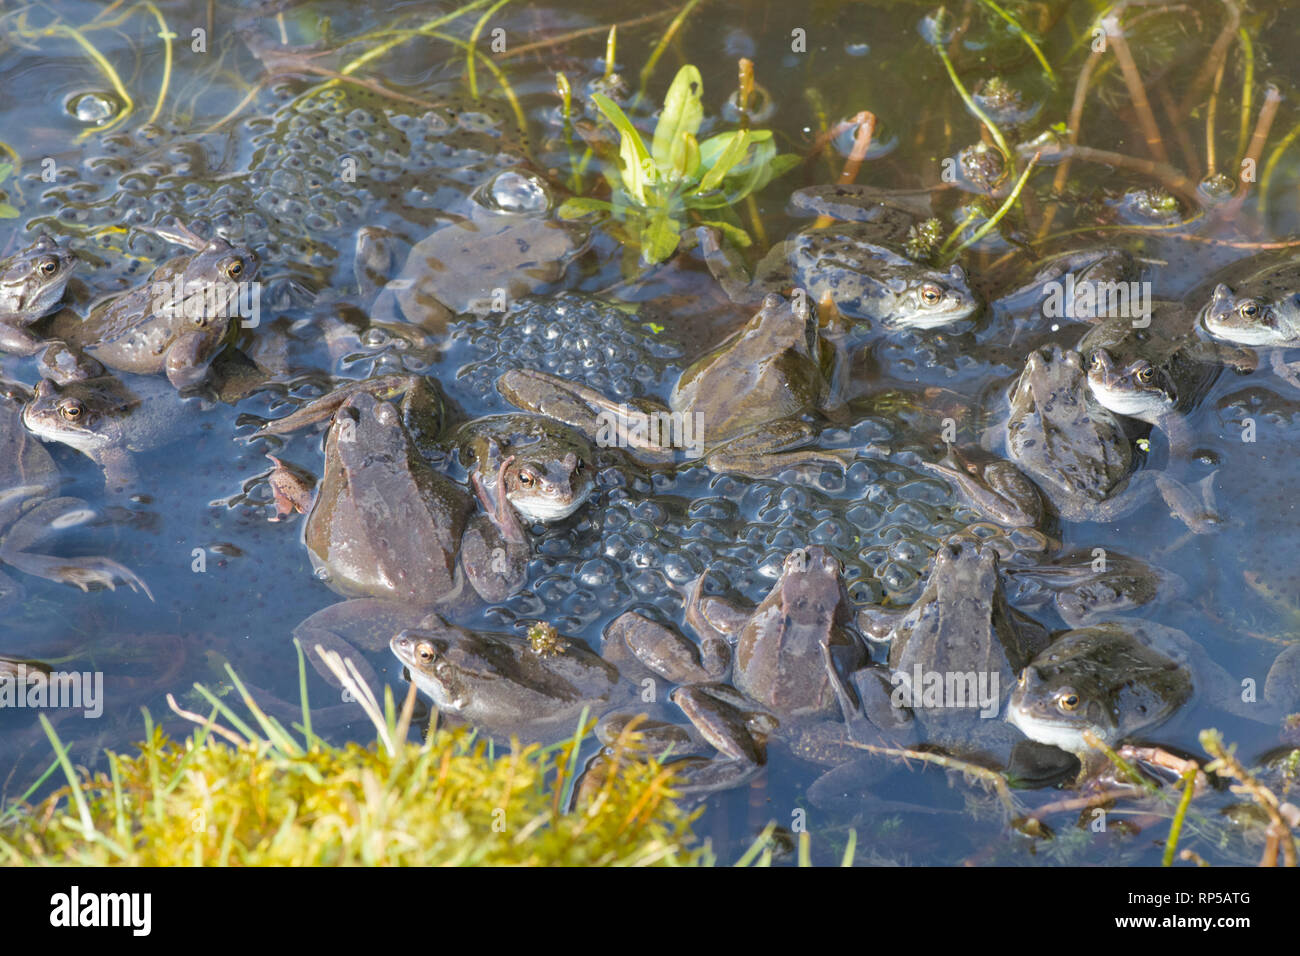 Common Frog, Rana temporaria, many males waiting on frog spawn in breeding pond for females to arrive for spawning, February, garden pond Stock Photo